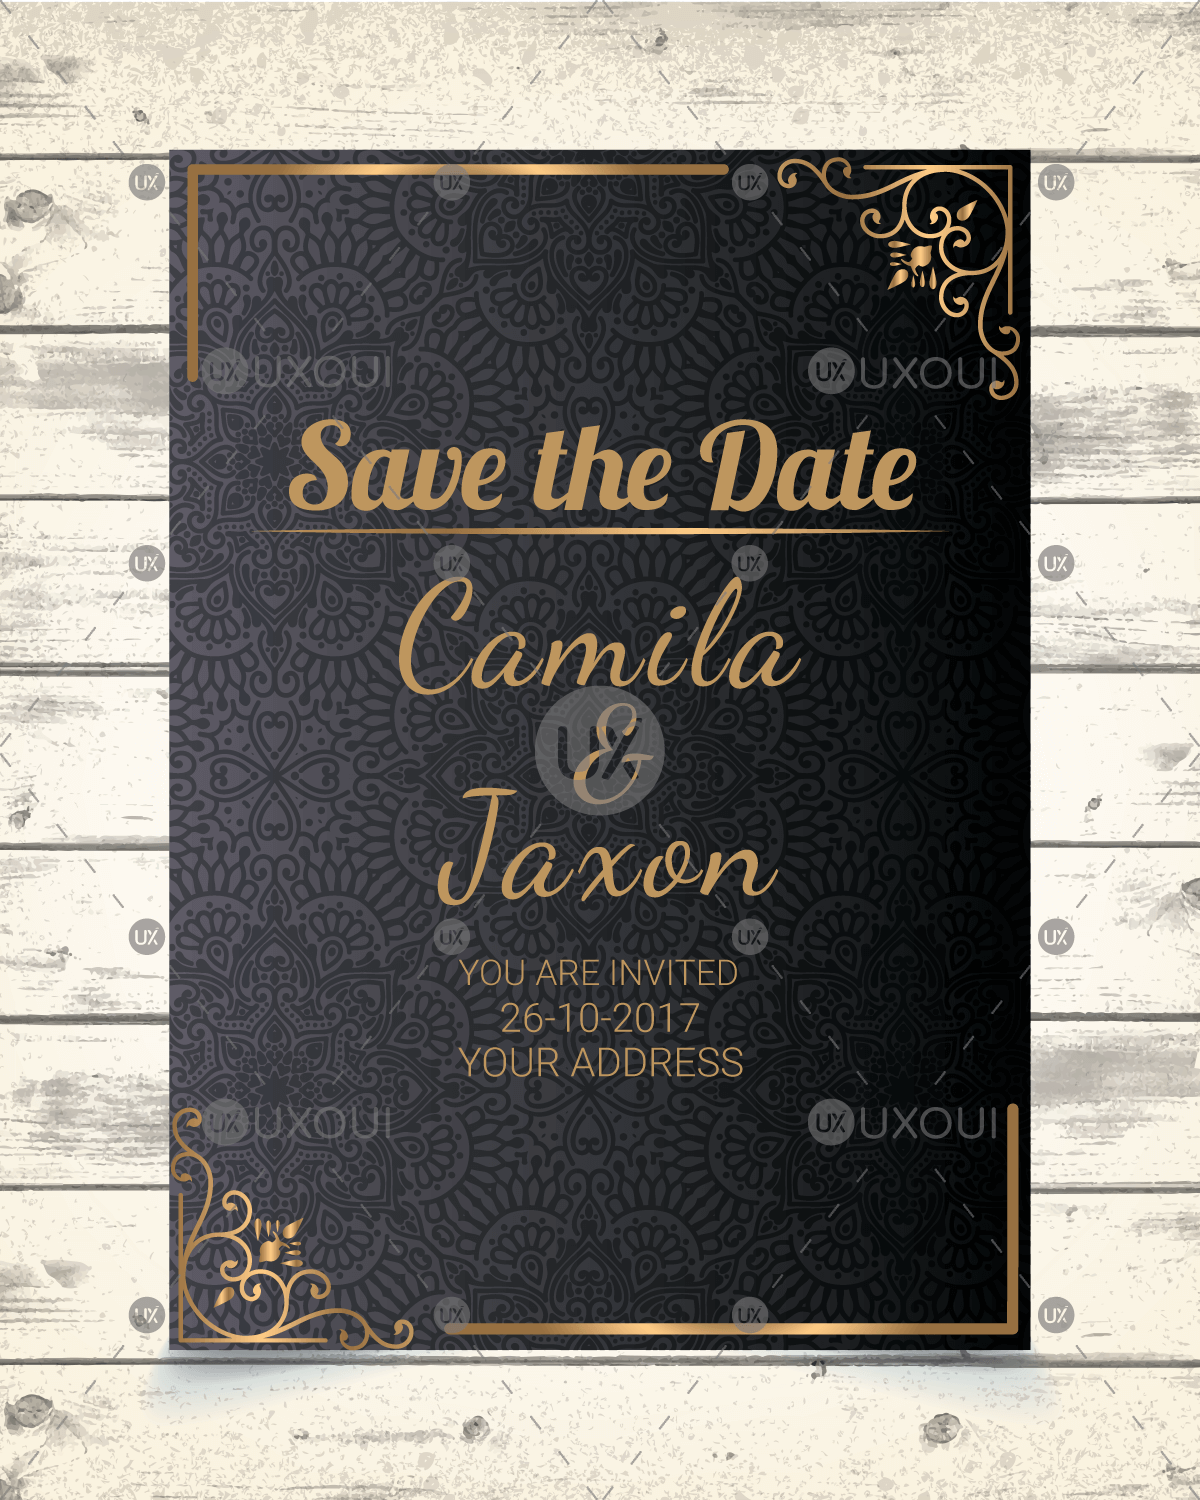 Save The Date Invitation Card Design With Luxury Ornamental Mandala Background In Gold Color Uxoui